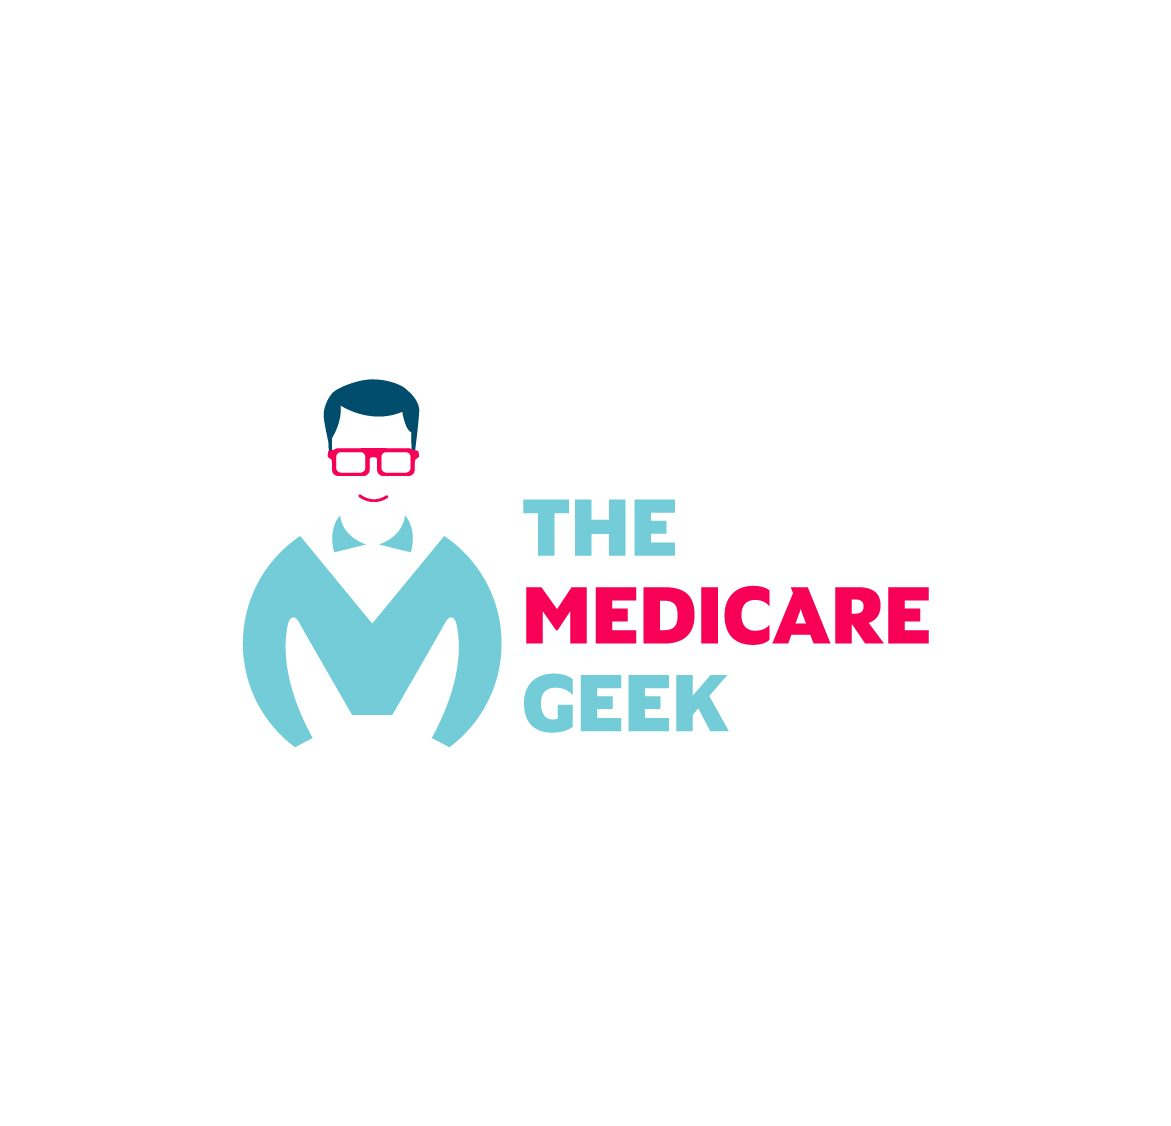 The Medicare Geek